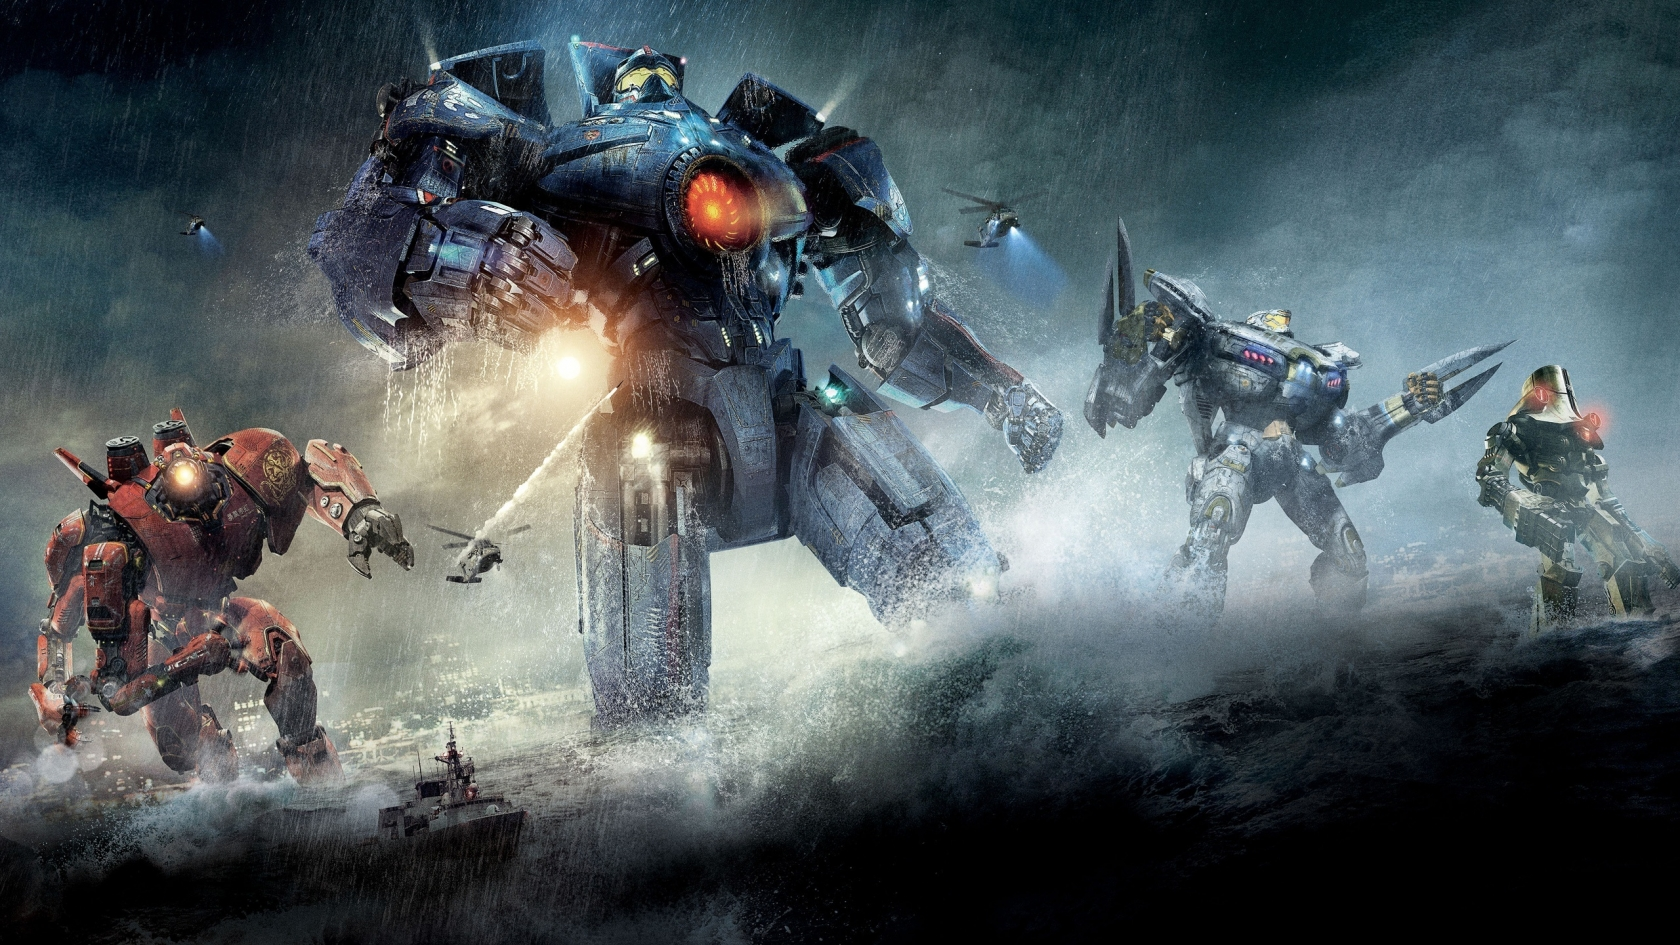 Pacific Rim Robots for 1680 x 945 HDTV resolution